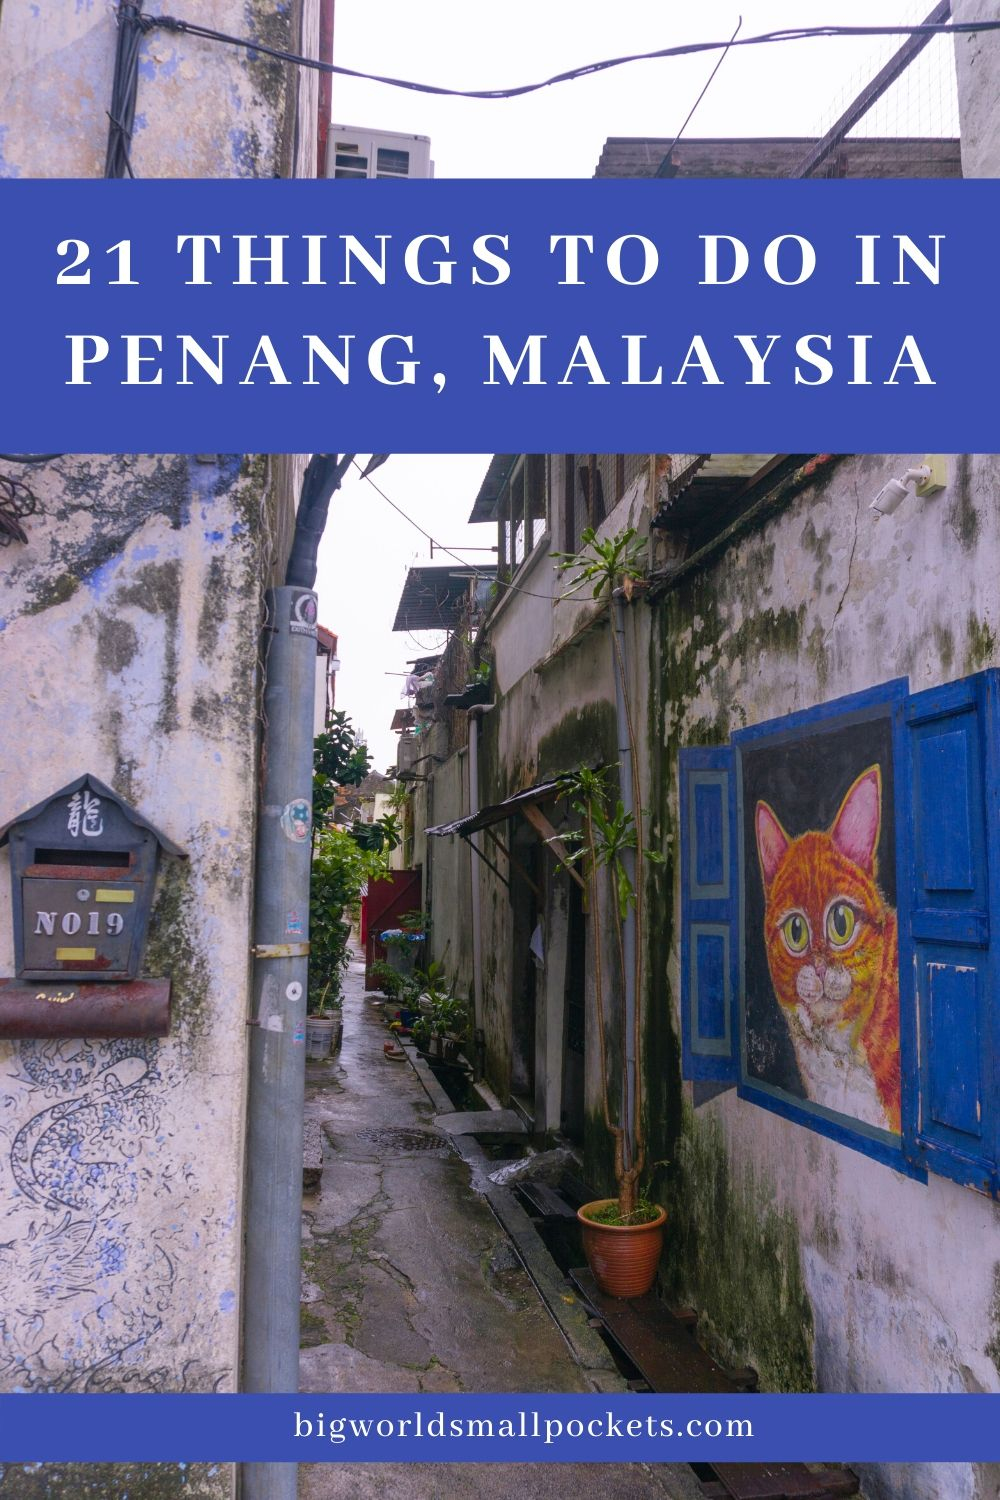 21 Top Things To Do in Penang, Malaysia